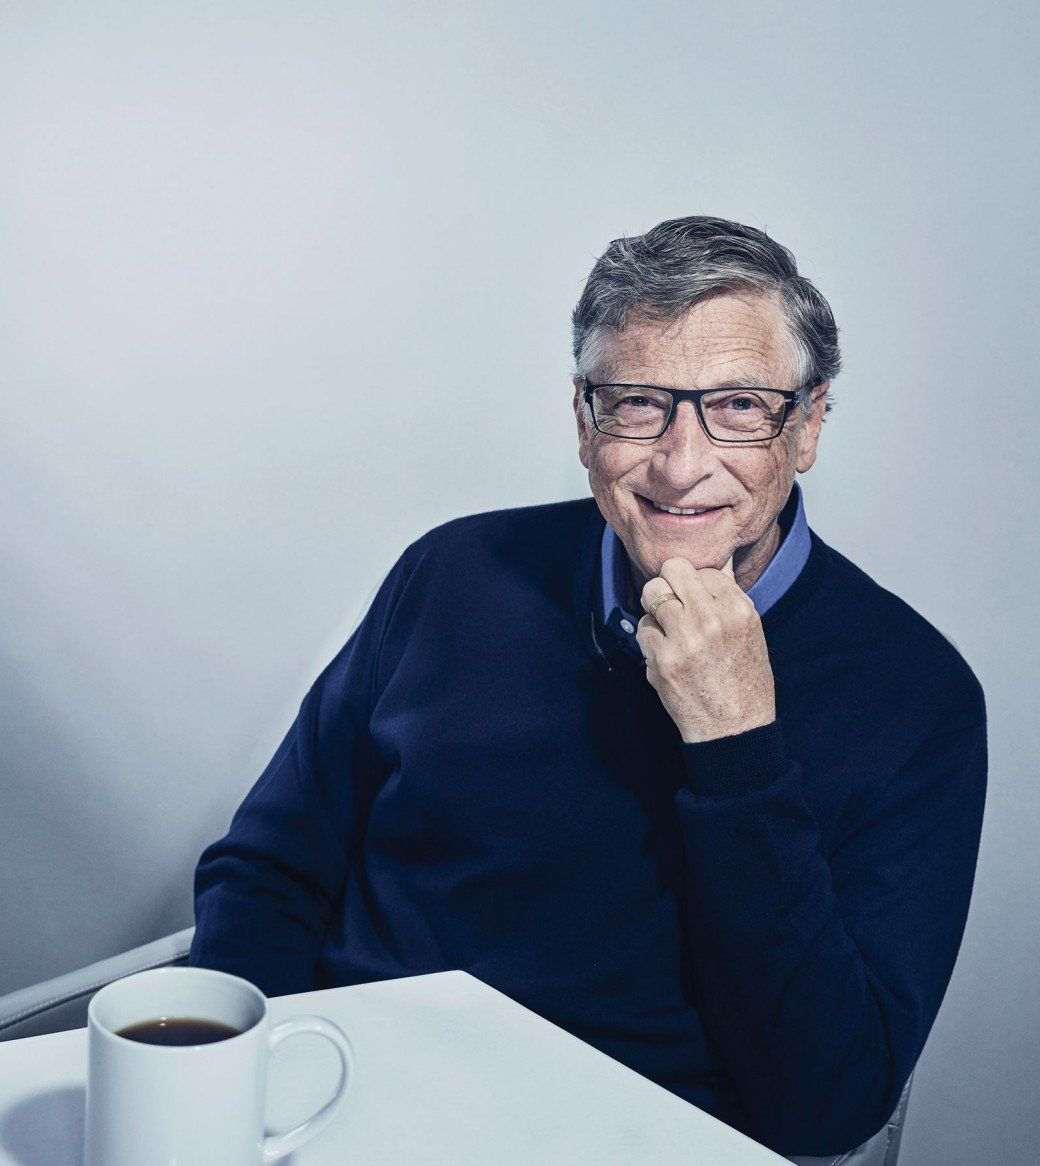 Bill Gates How We Ll Invent The Future